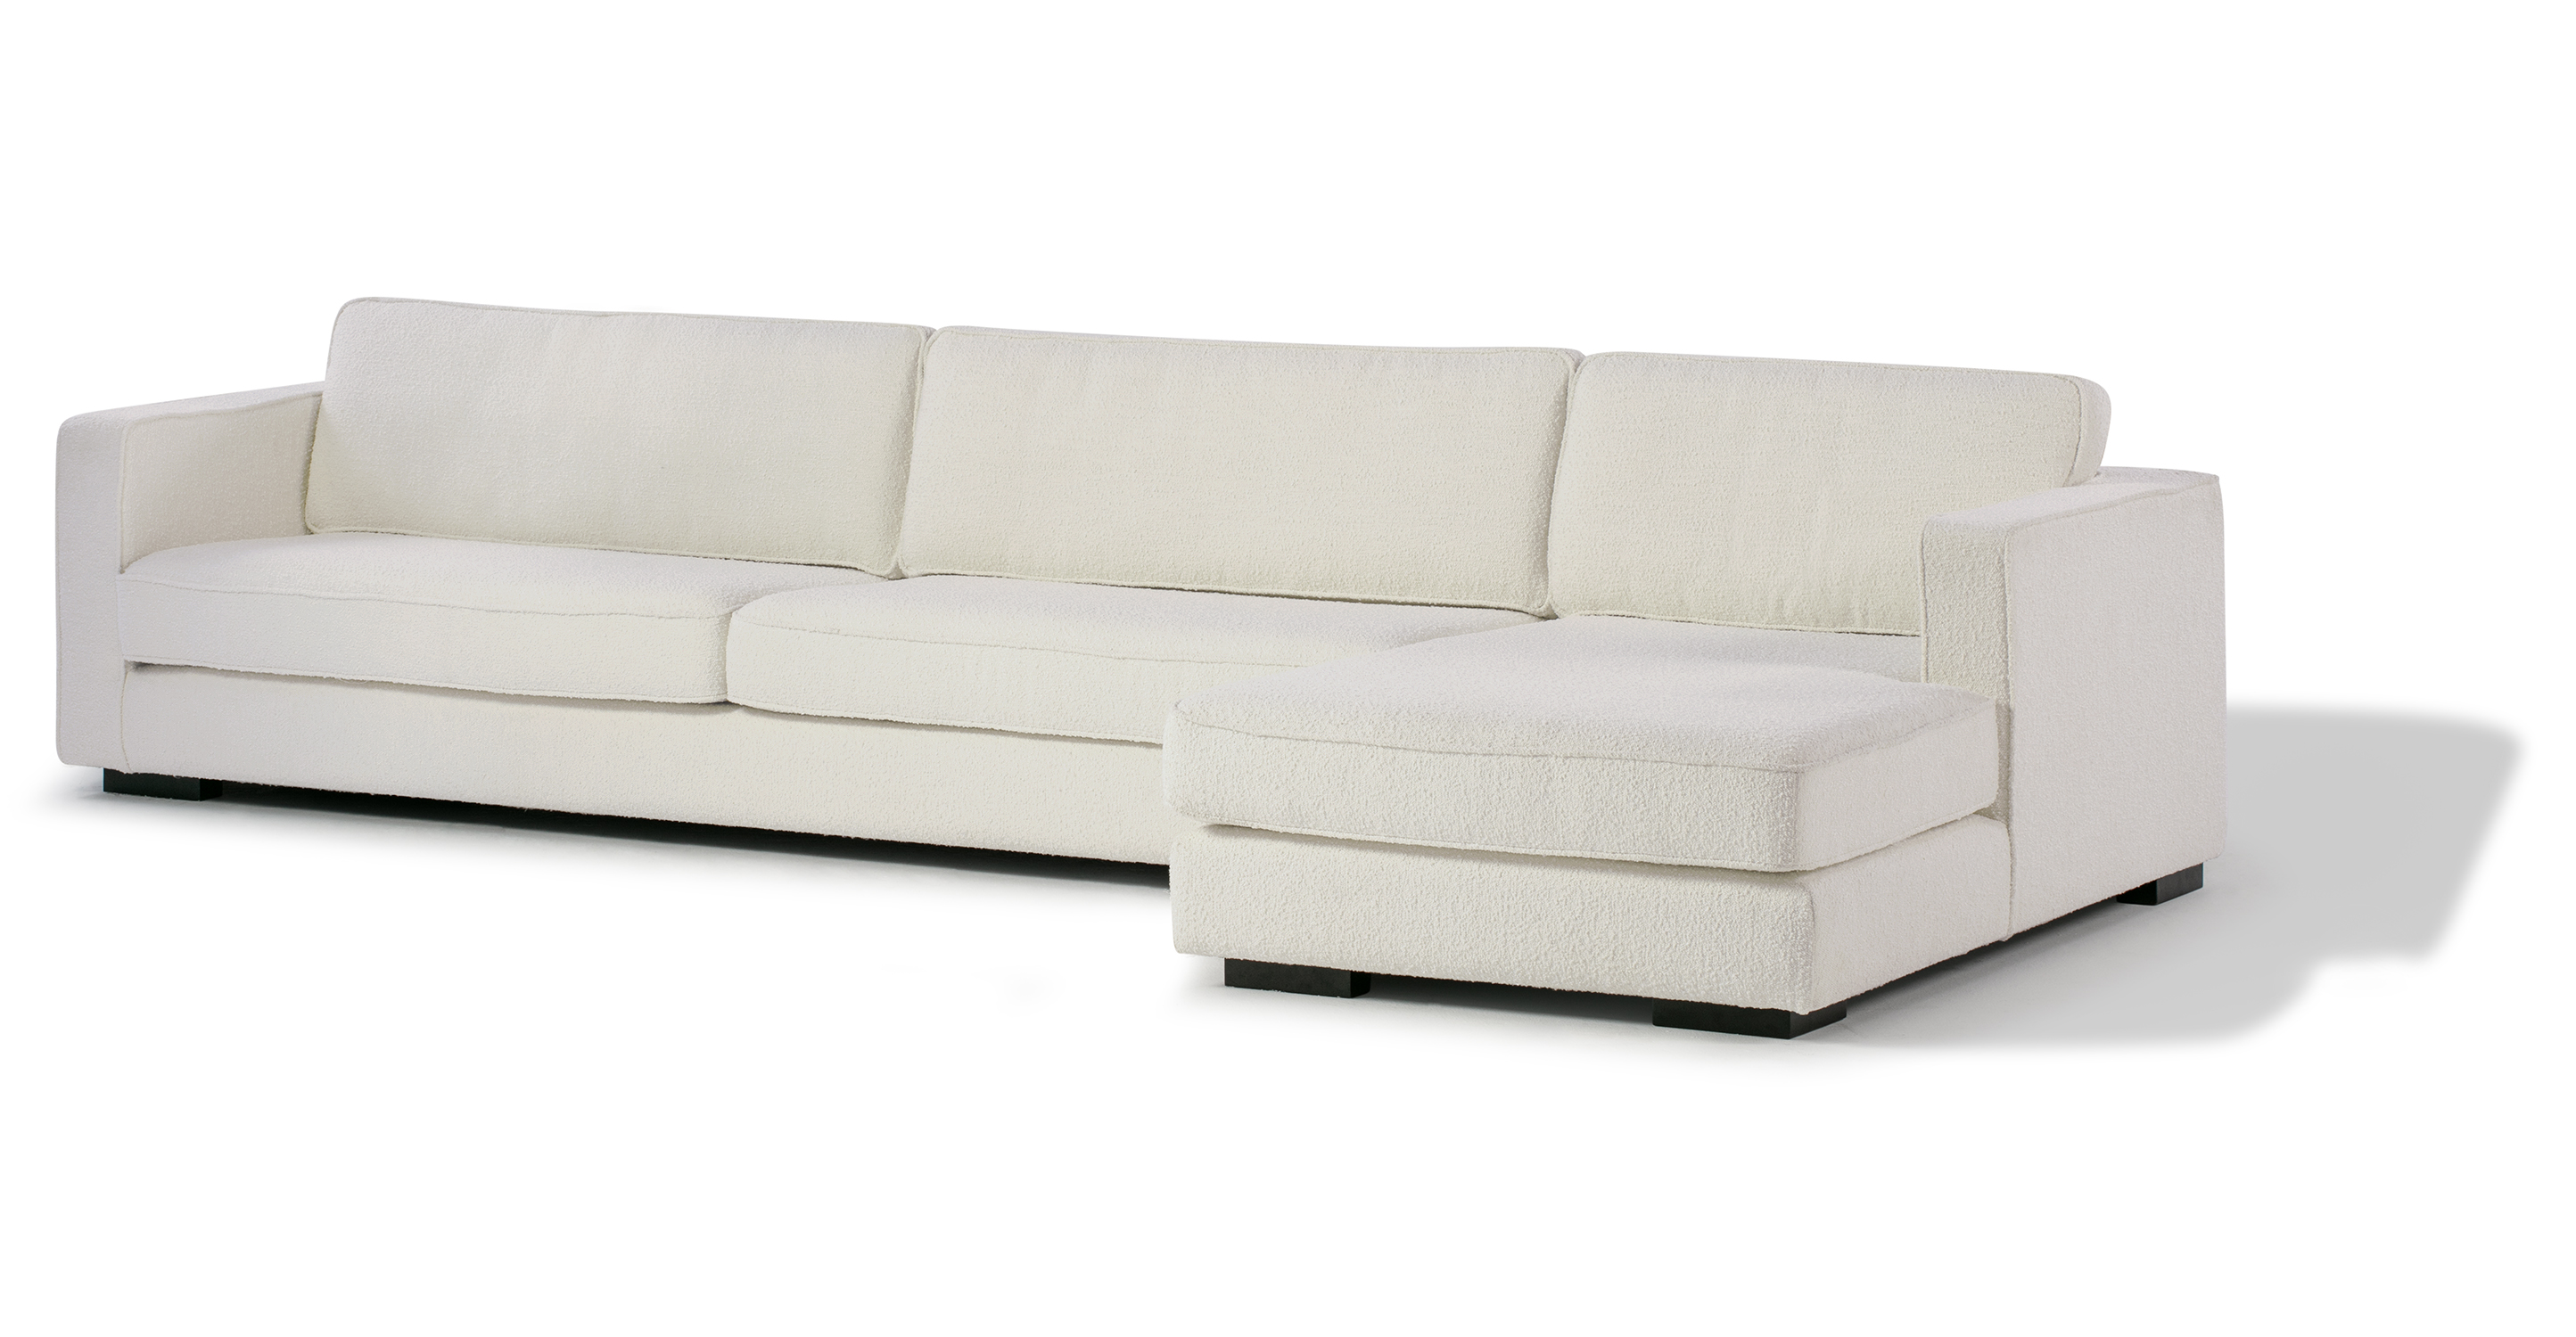 "Architect 133"" Fabric Sofa Sectional Right, Blanc Boucle"